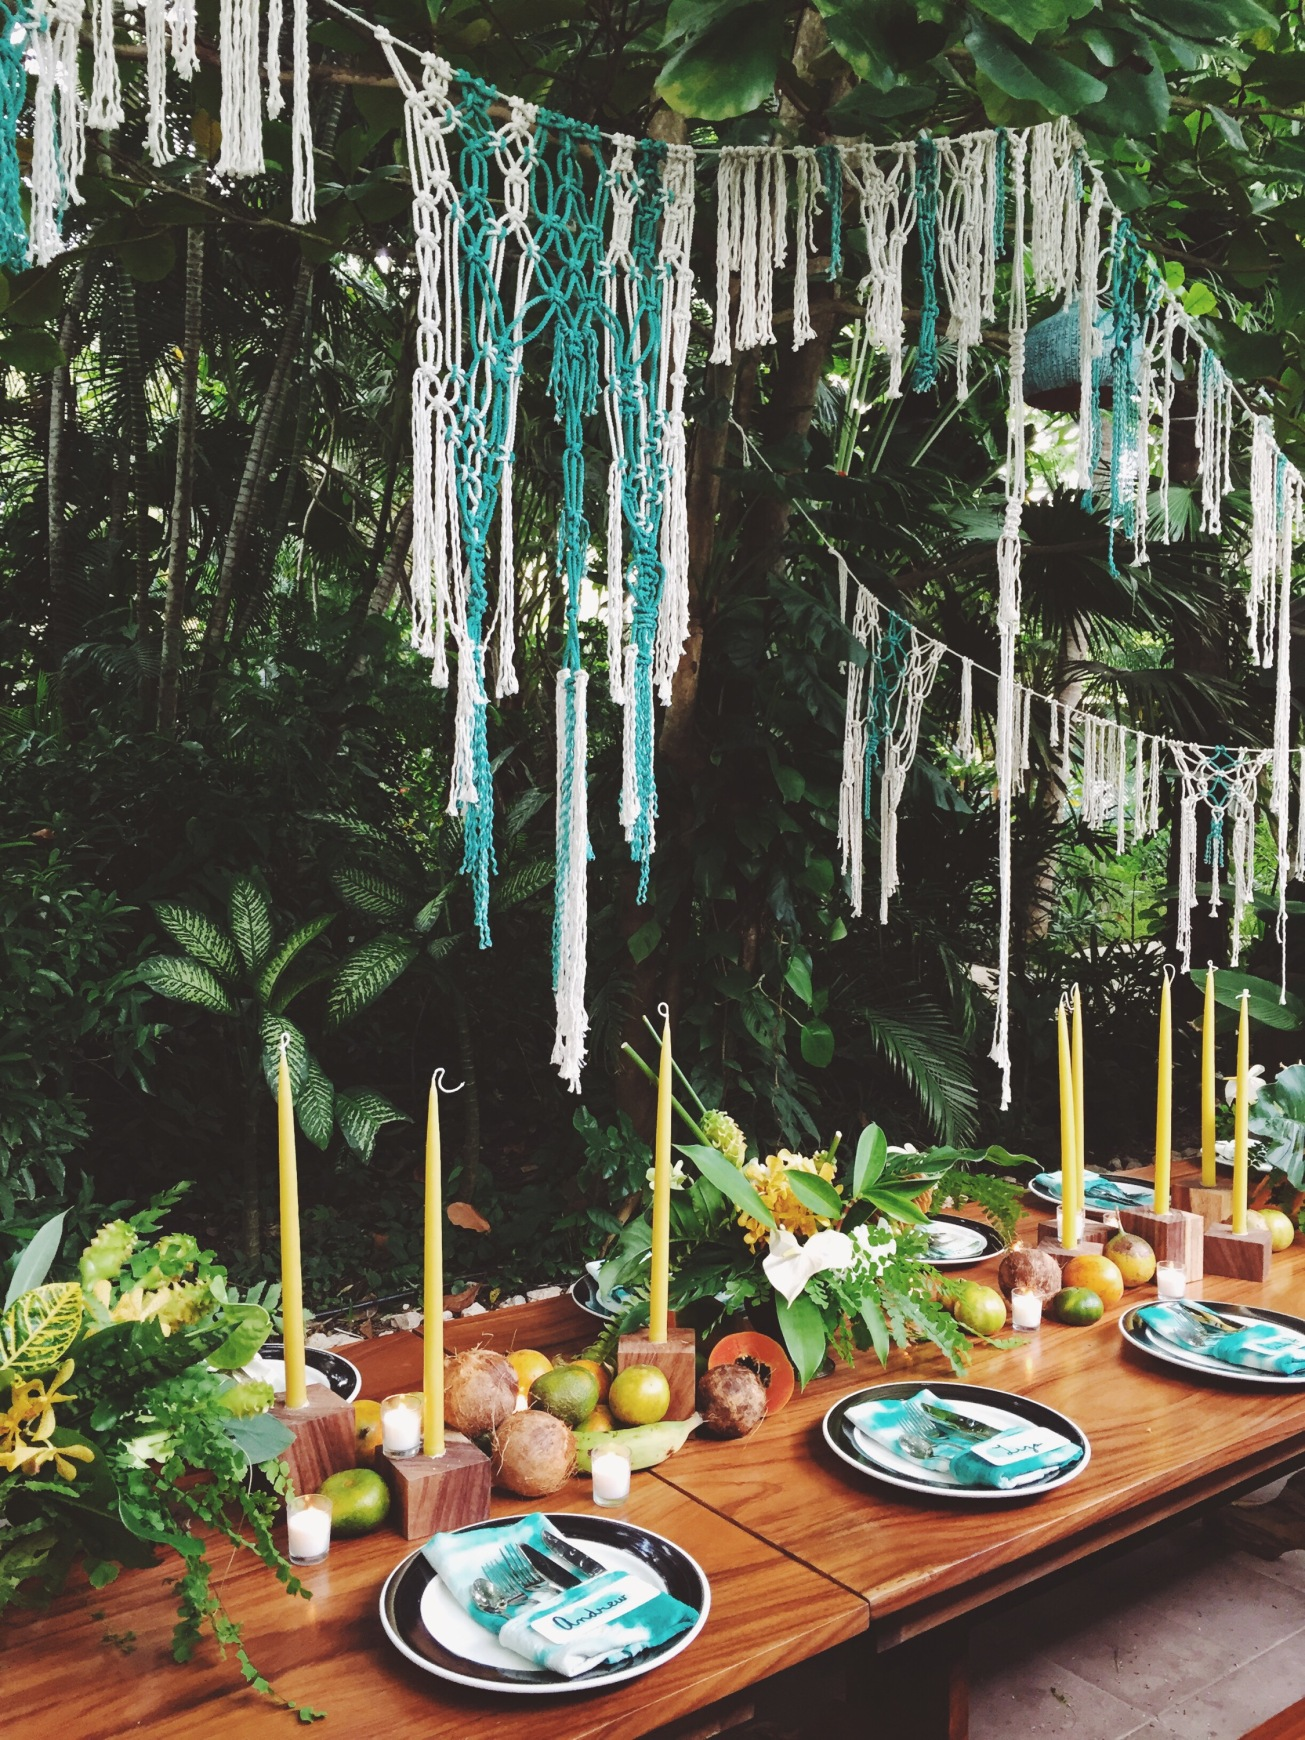 Macrame installation in Costa Rica